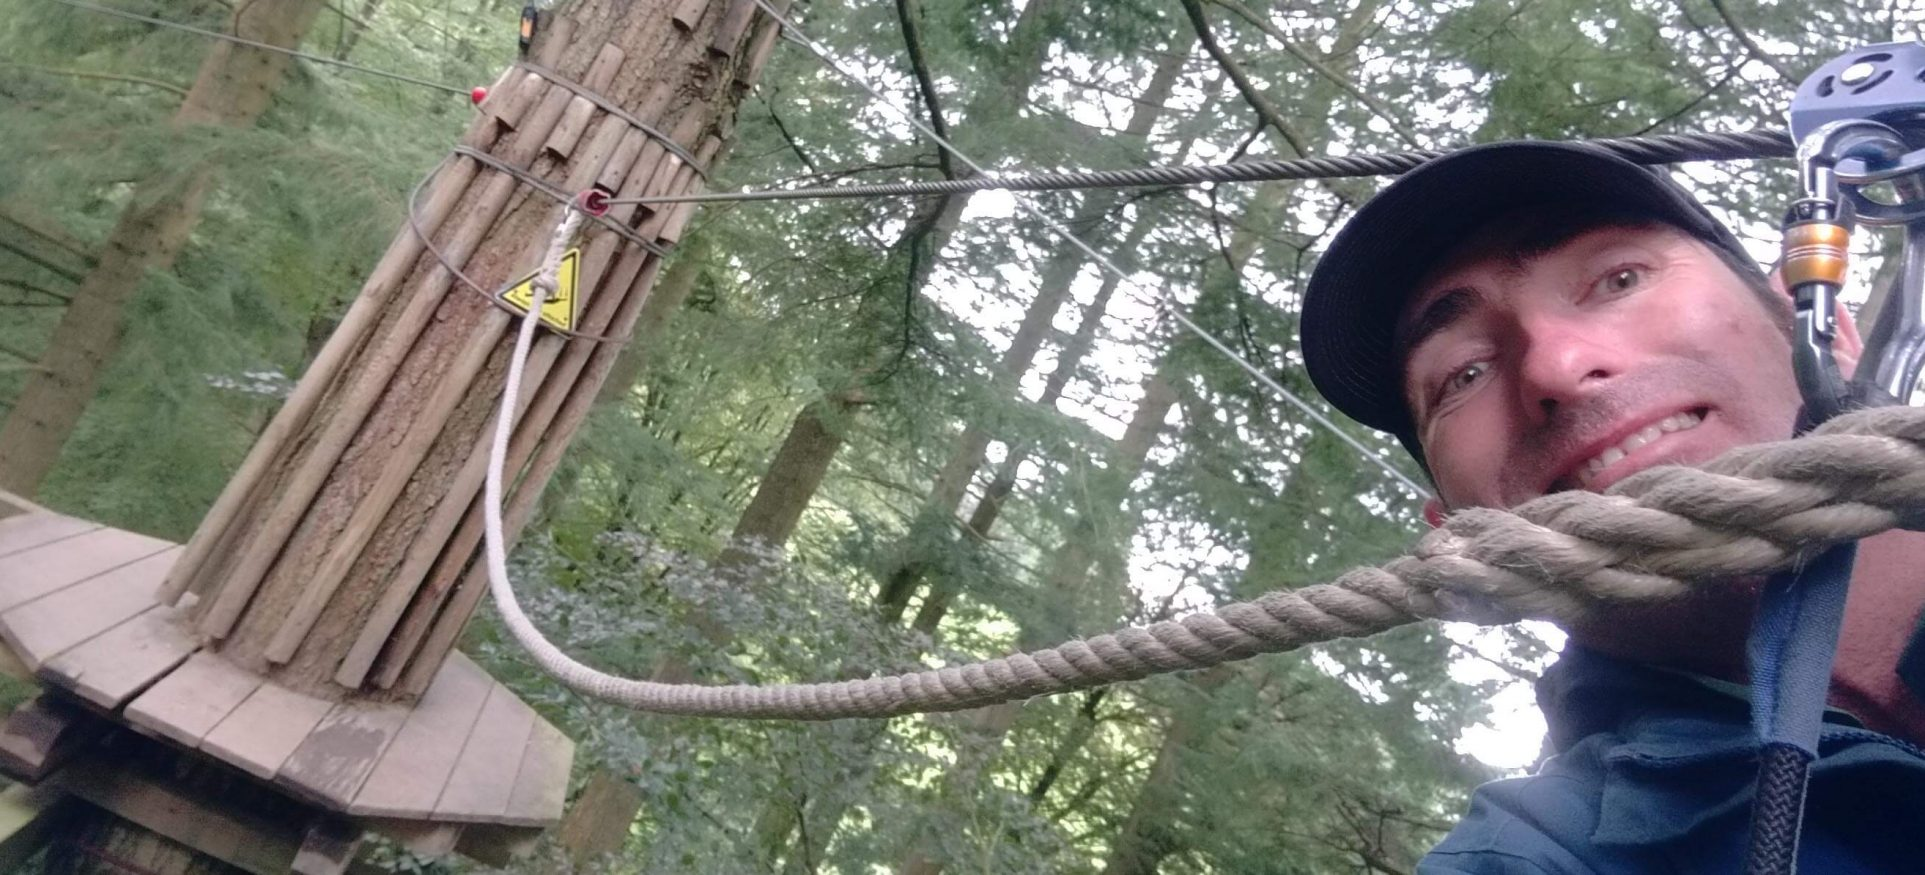 Self Catering trip to Go Ape